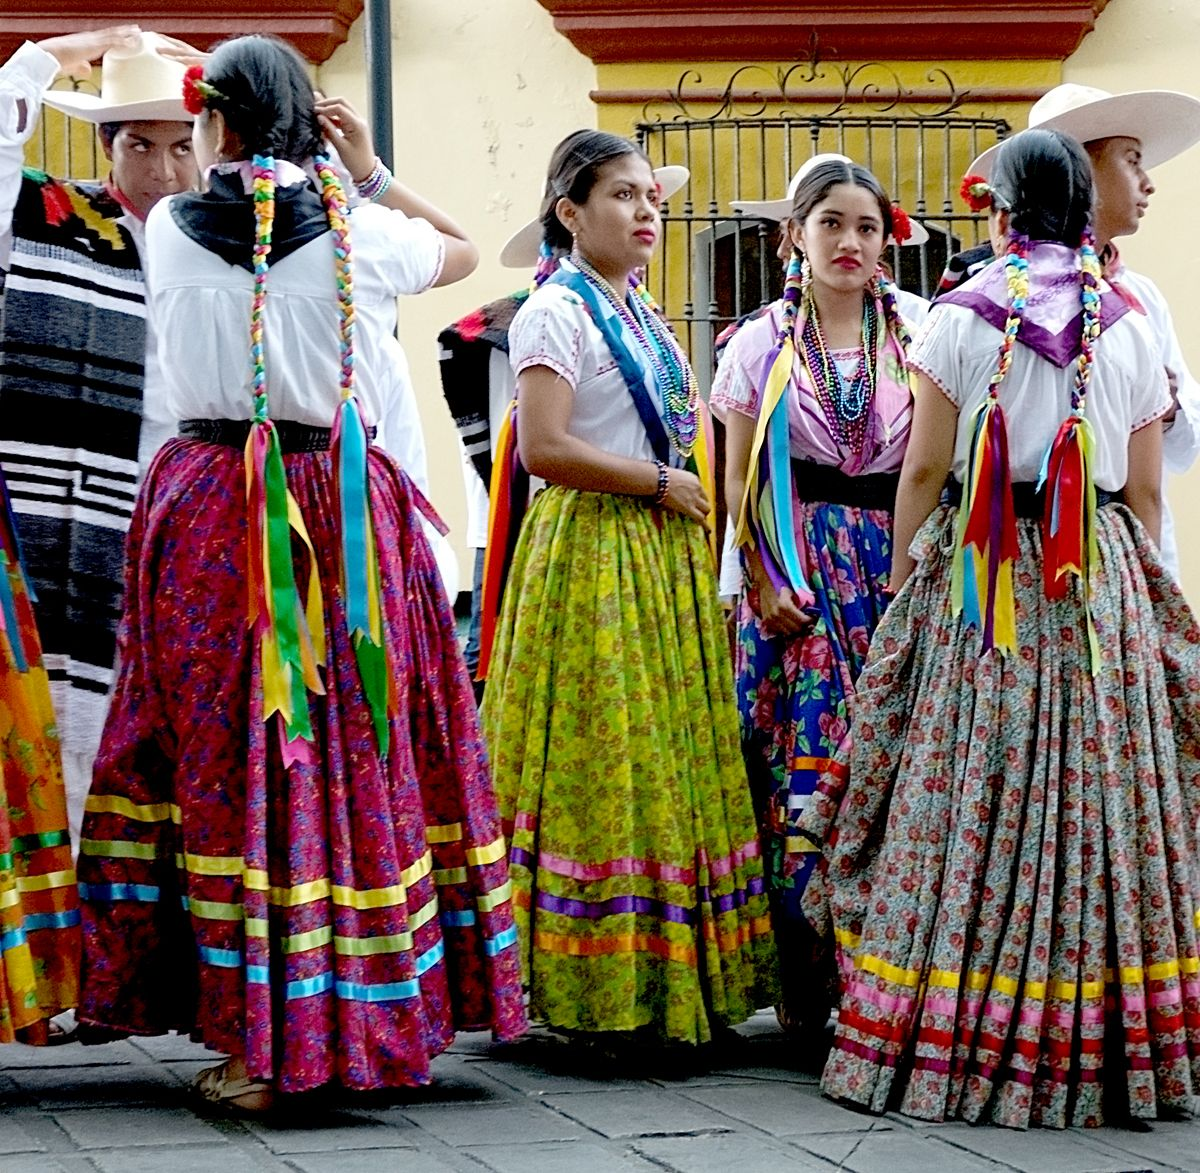 20 July-6 Aug 2013. This is the fourth and final post about the Guelaguetza Festival. We were in Oaxaca for nearly three weeks. The first ten days we were immersed in the dancing and music of Guela...